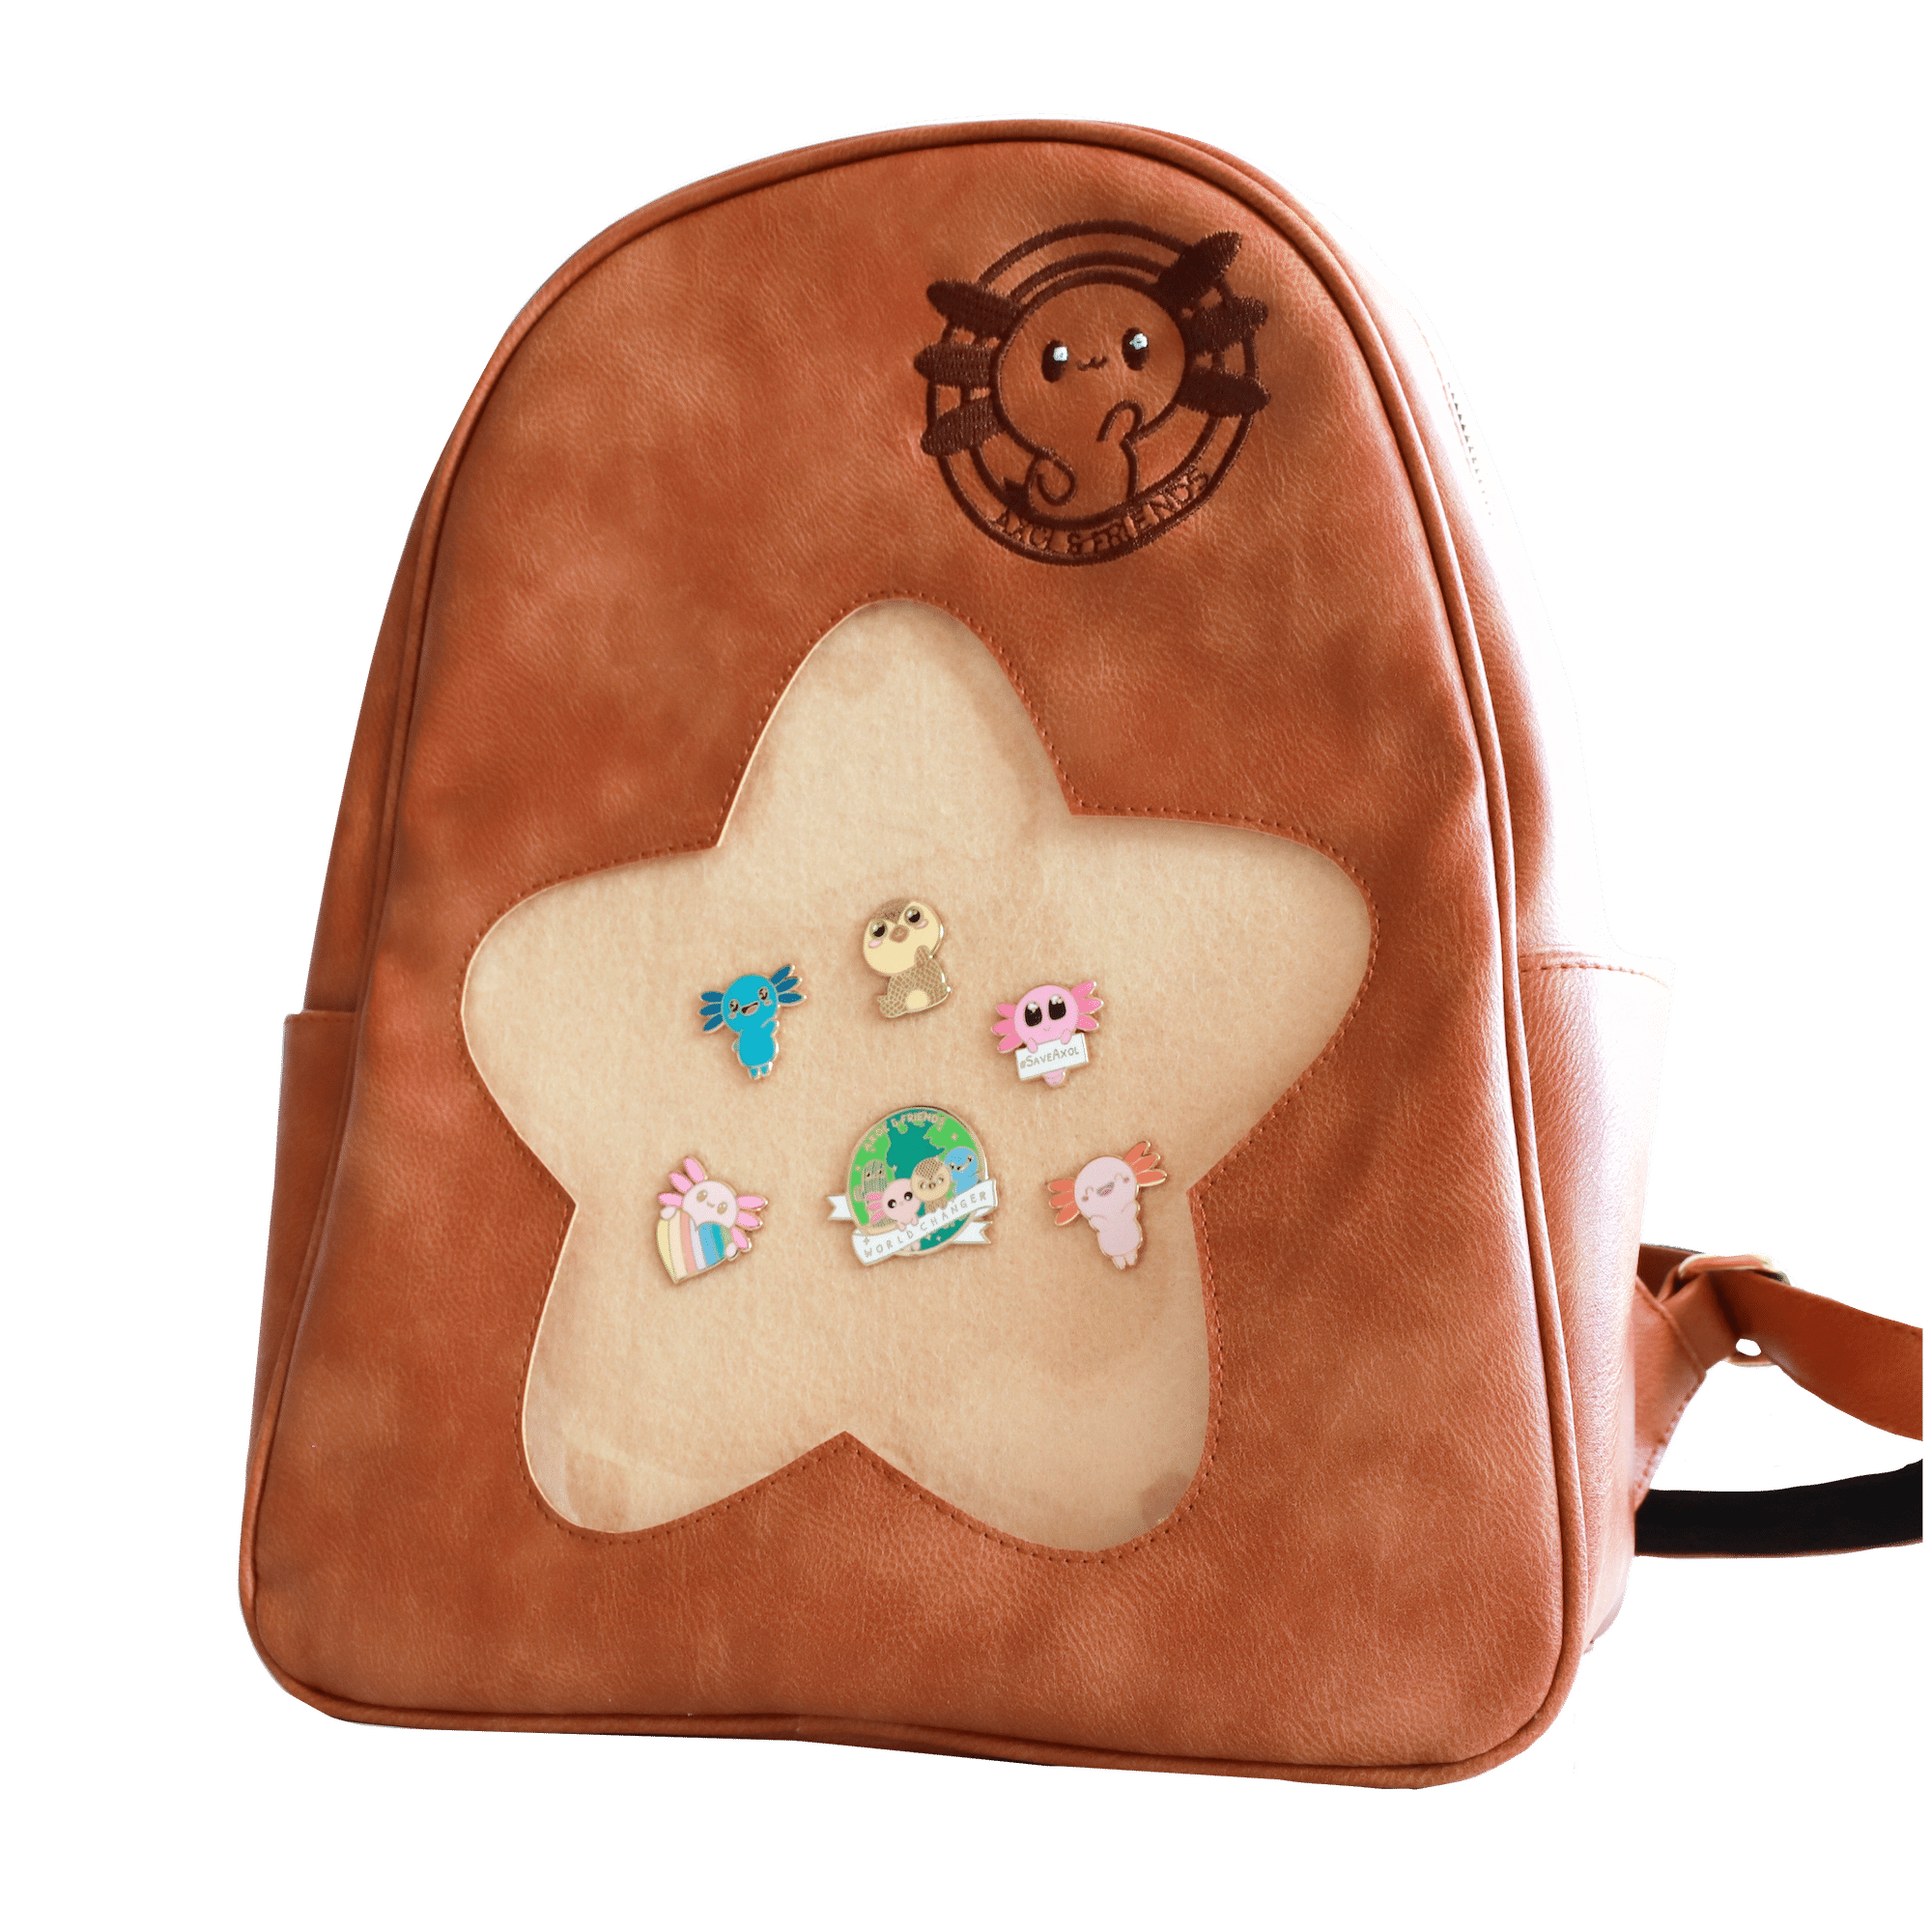 World Changer Adventure Backpack. Backpack, nap sack, satchel, school bag, book bag. Known all around the world, by so many names, the backpack is the quintessential adventure accessories.